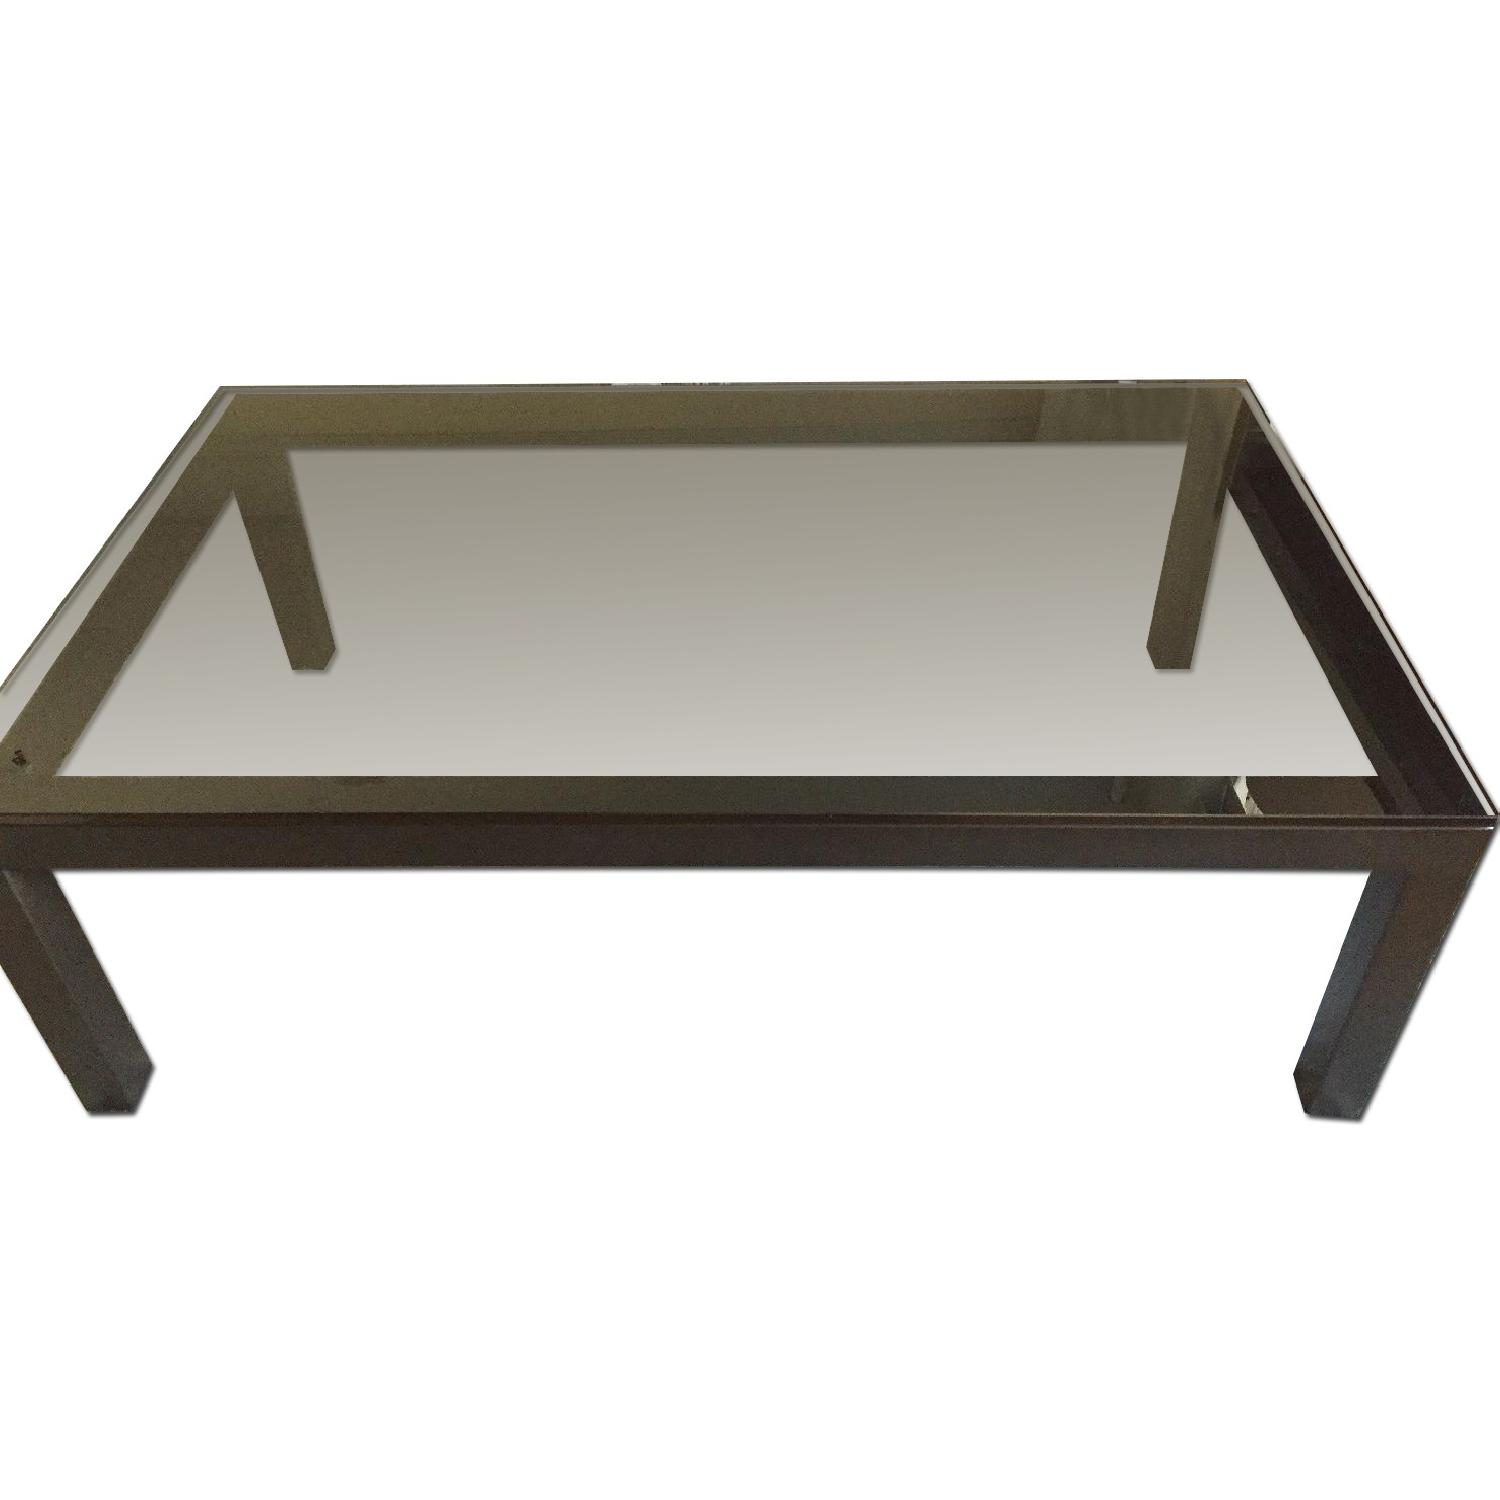 Crate & Barrel Parsons Coffee Table w/ Grey Glass - image-0